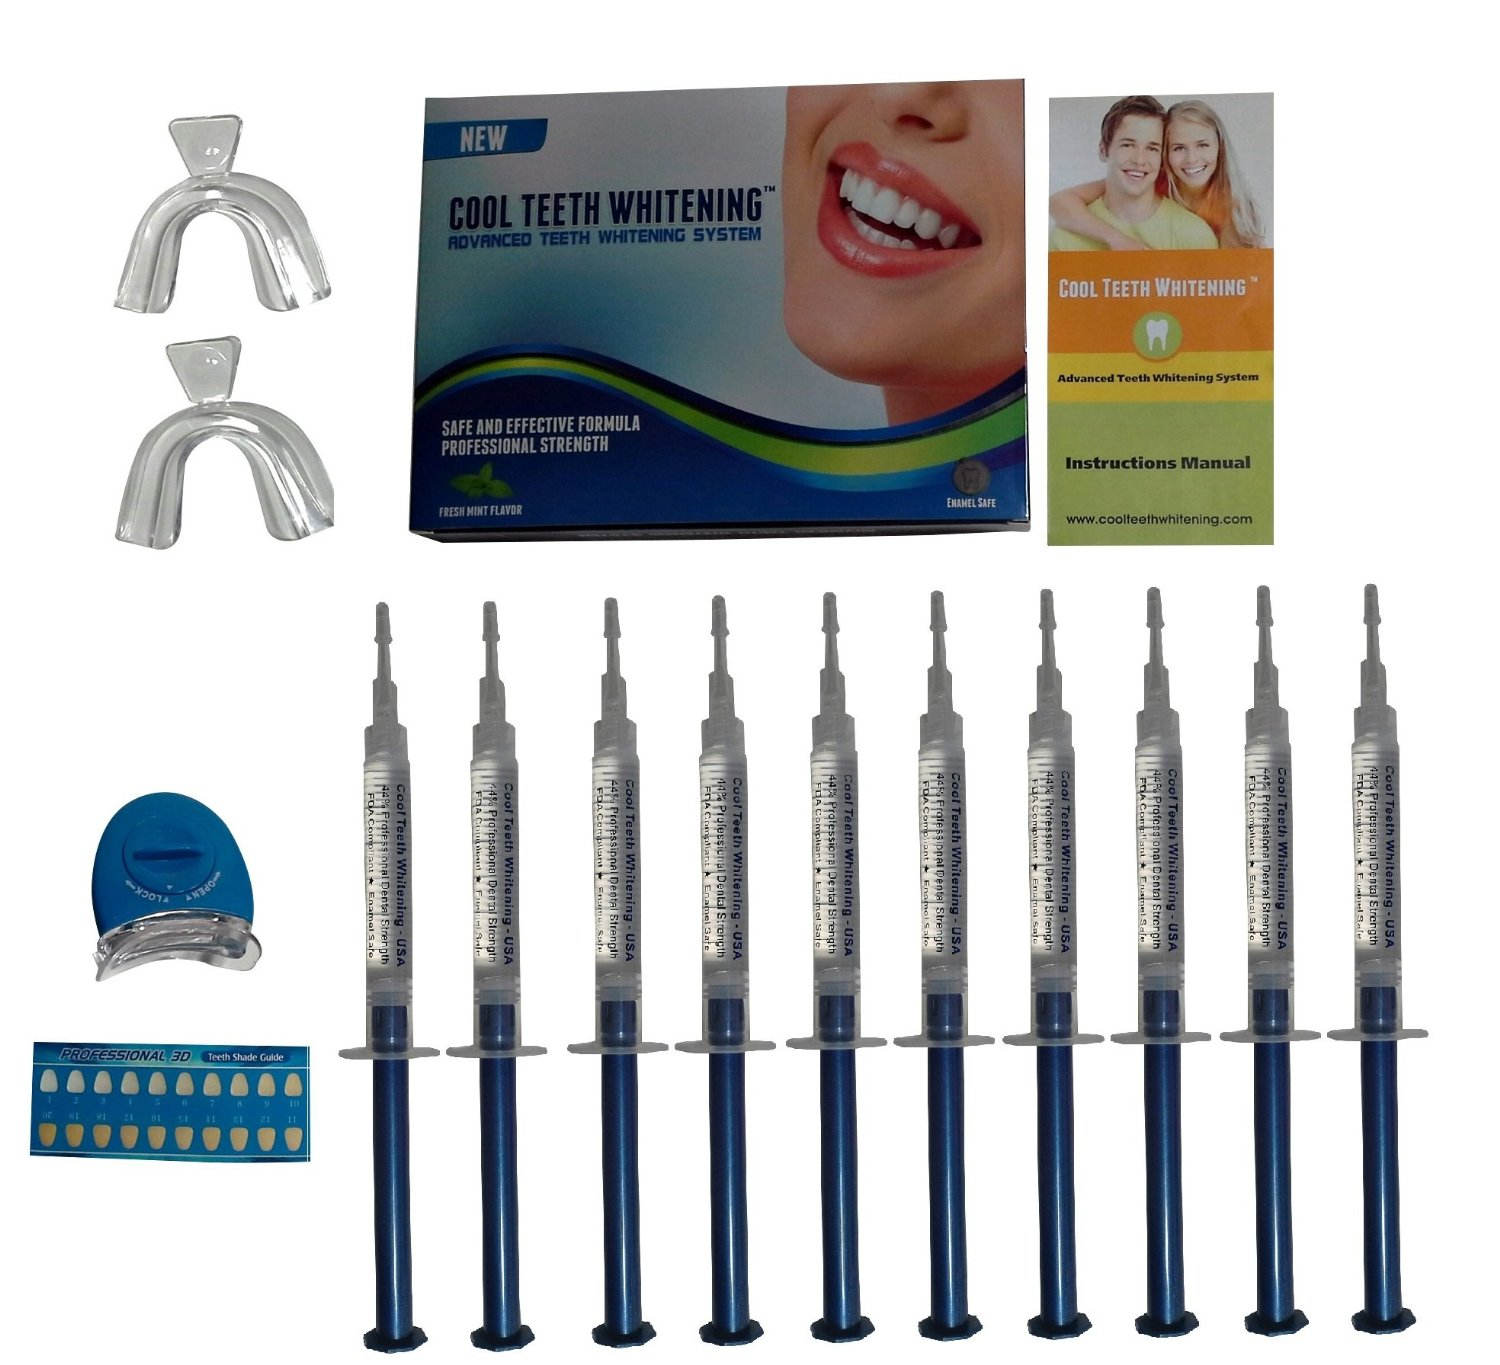 Cool Teeth Whitening Kit 10 Syringes Of 44 Carbamide Peroxide